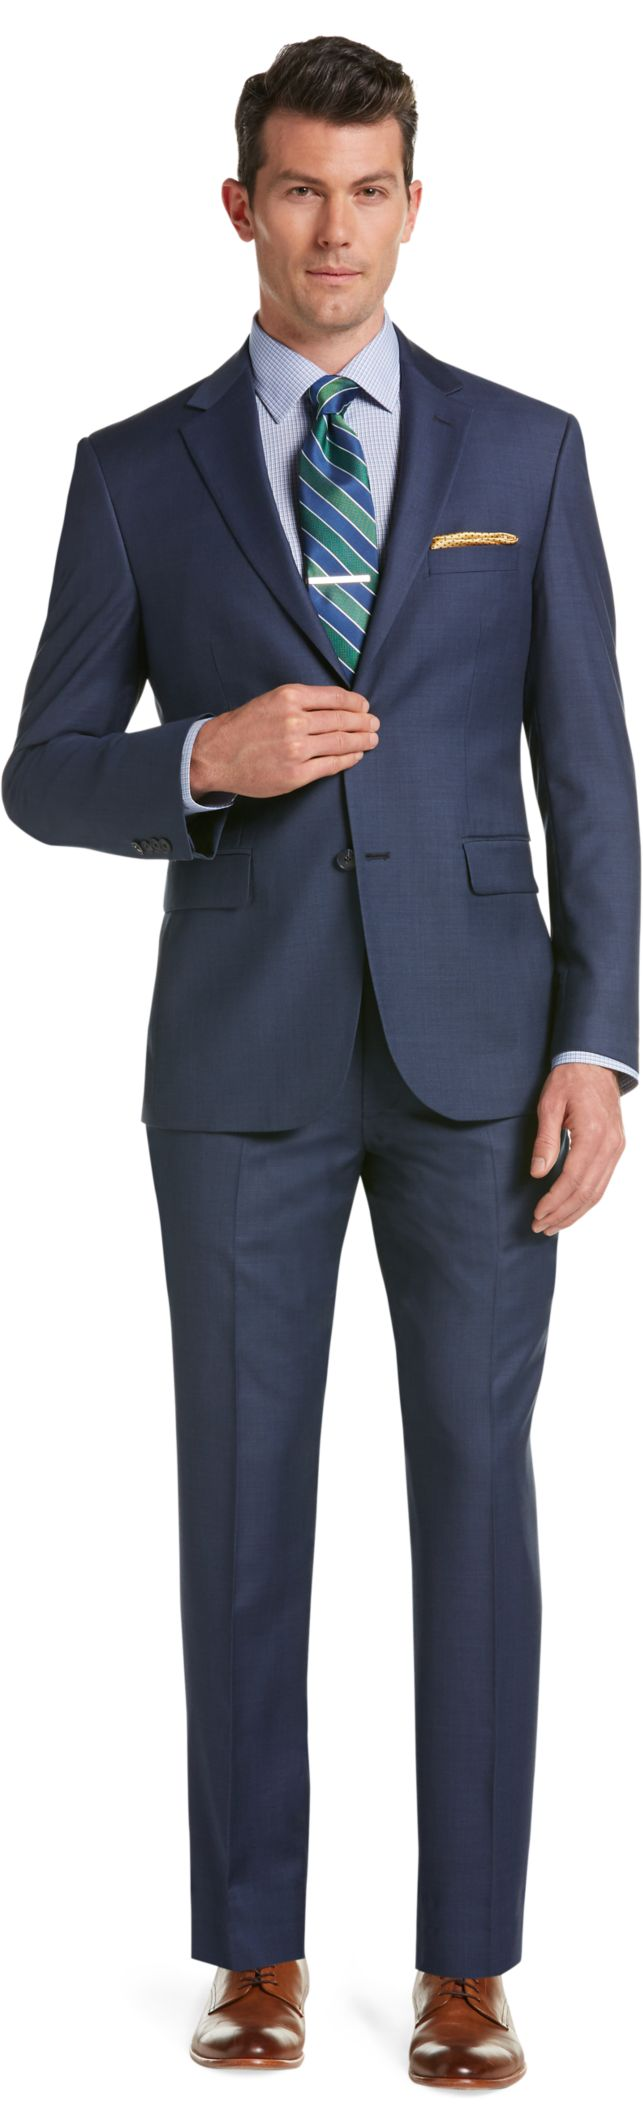 Traveler Collection Tailored Fit Sharkskin Suit - Traveler Suits ...